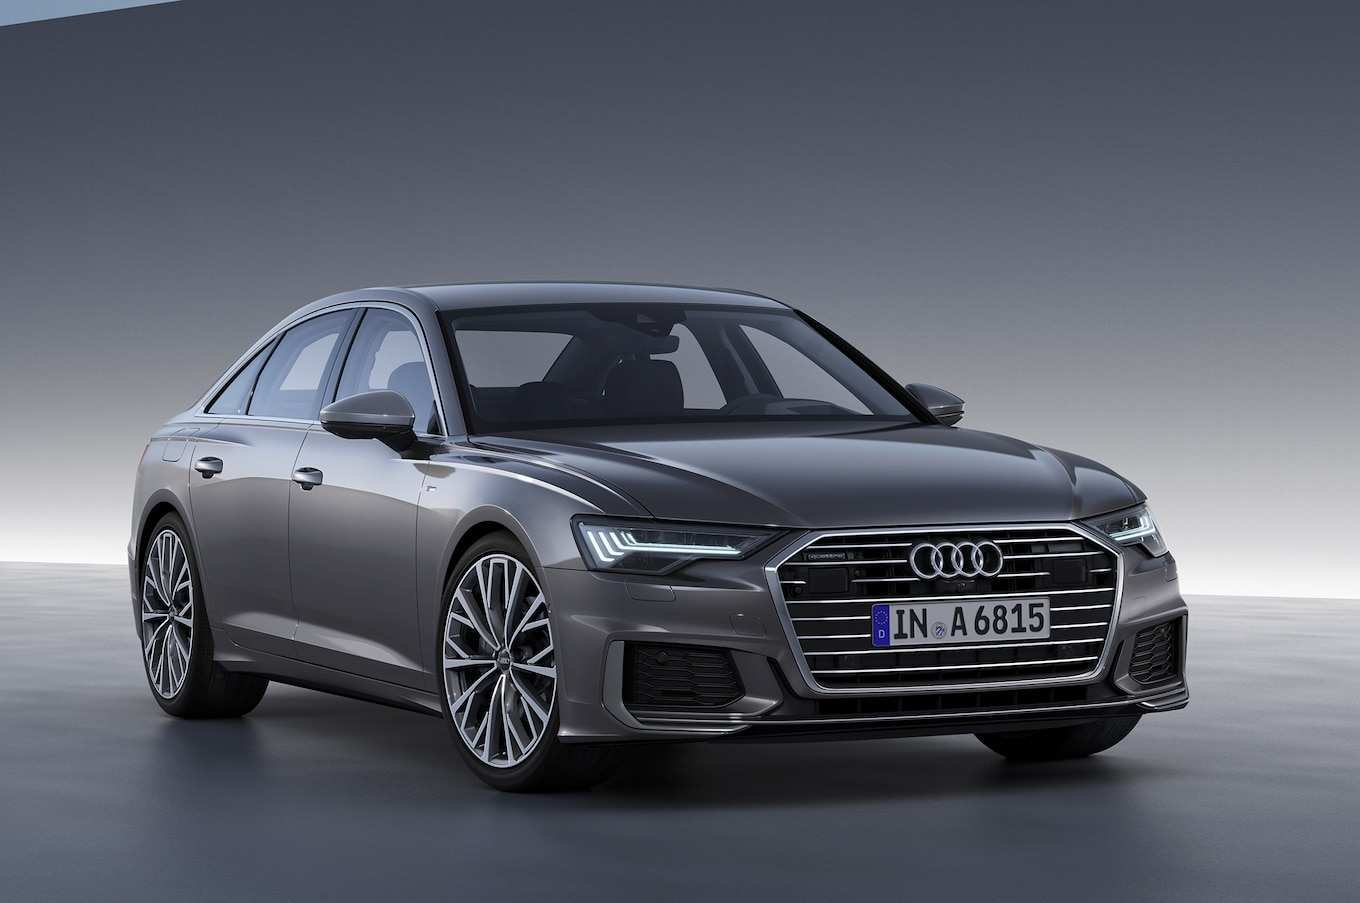 56 The Review Audi 2019 A6 New Interior Style with Review Audi 2019 A6 New Interior